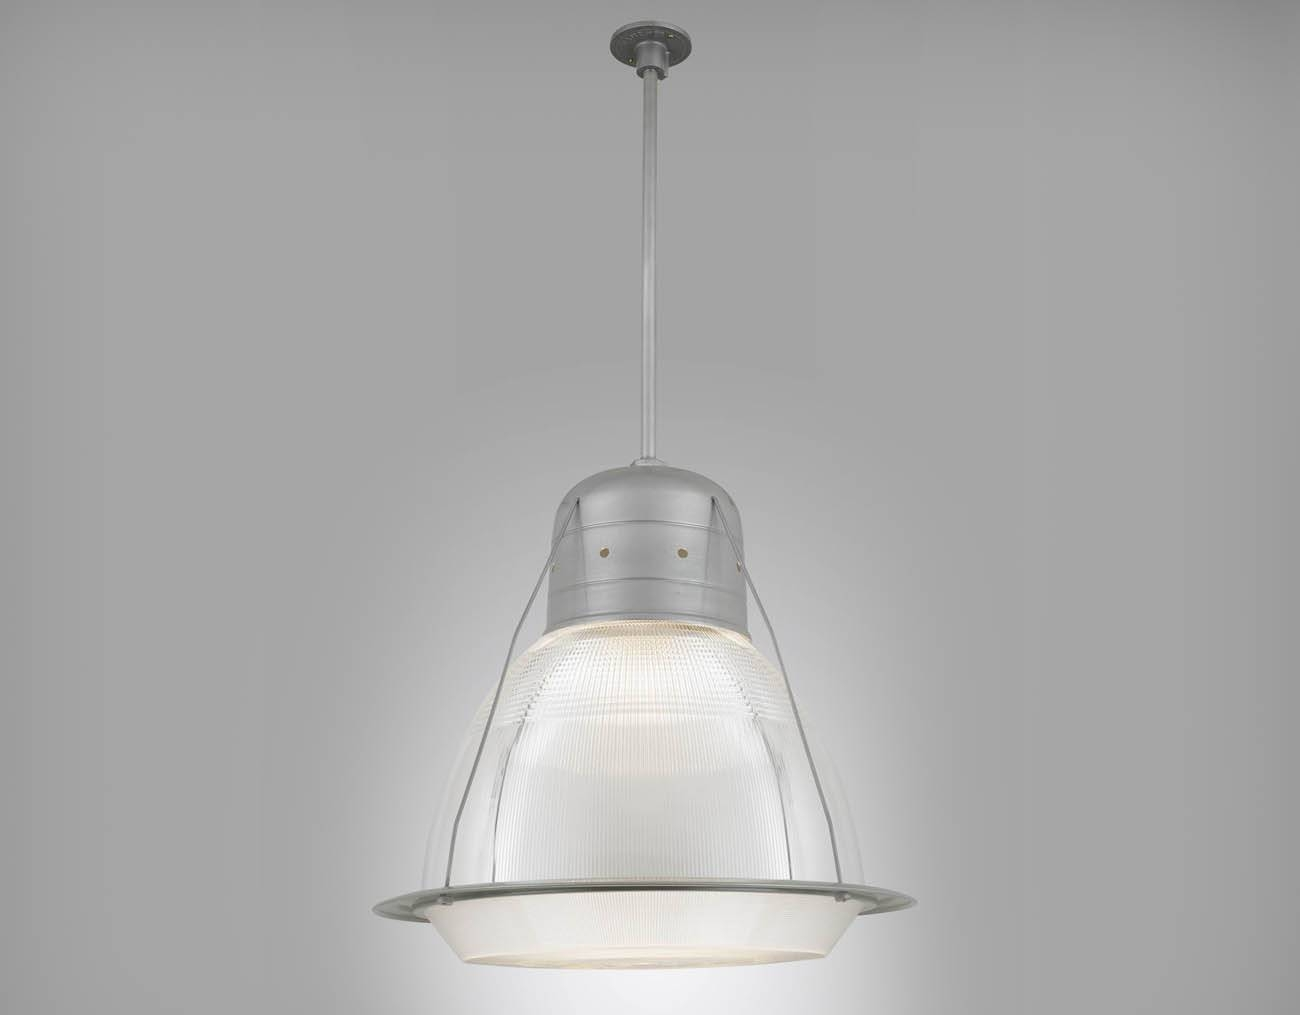 Fresh Commercial Pendant Light Fixtures 82 About Remodel Led Mini regarding Commercial Pendant Lights (Image 10 of 15)